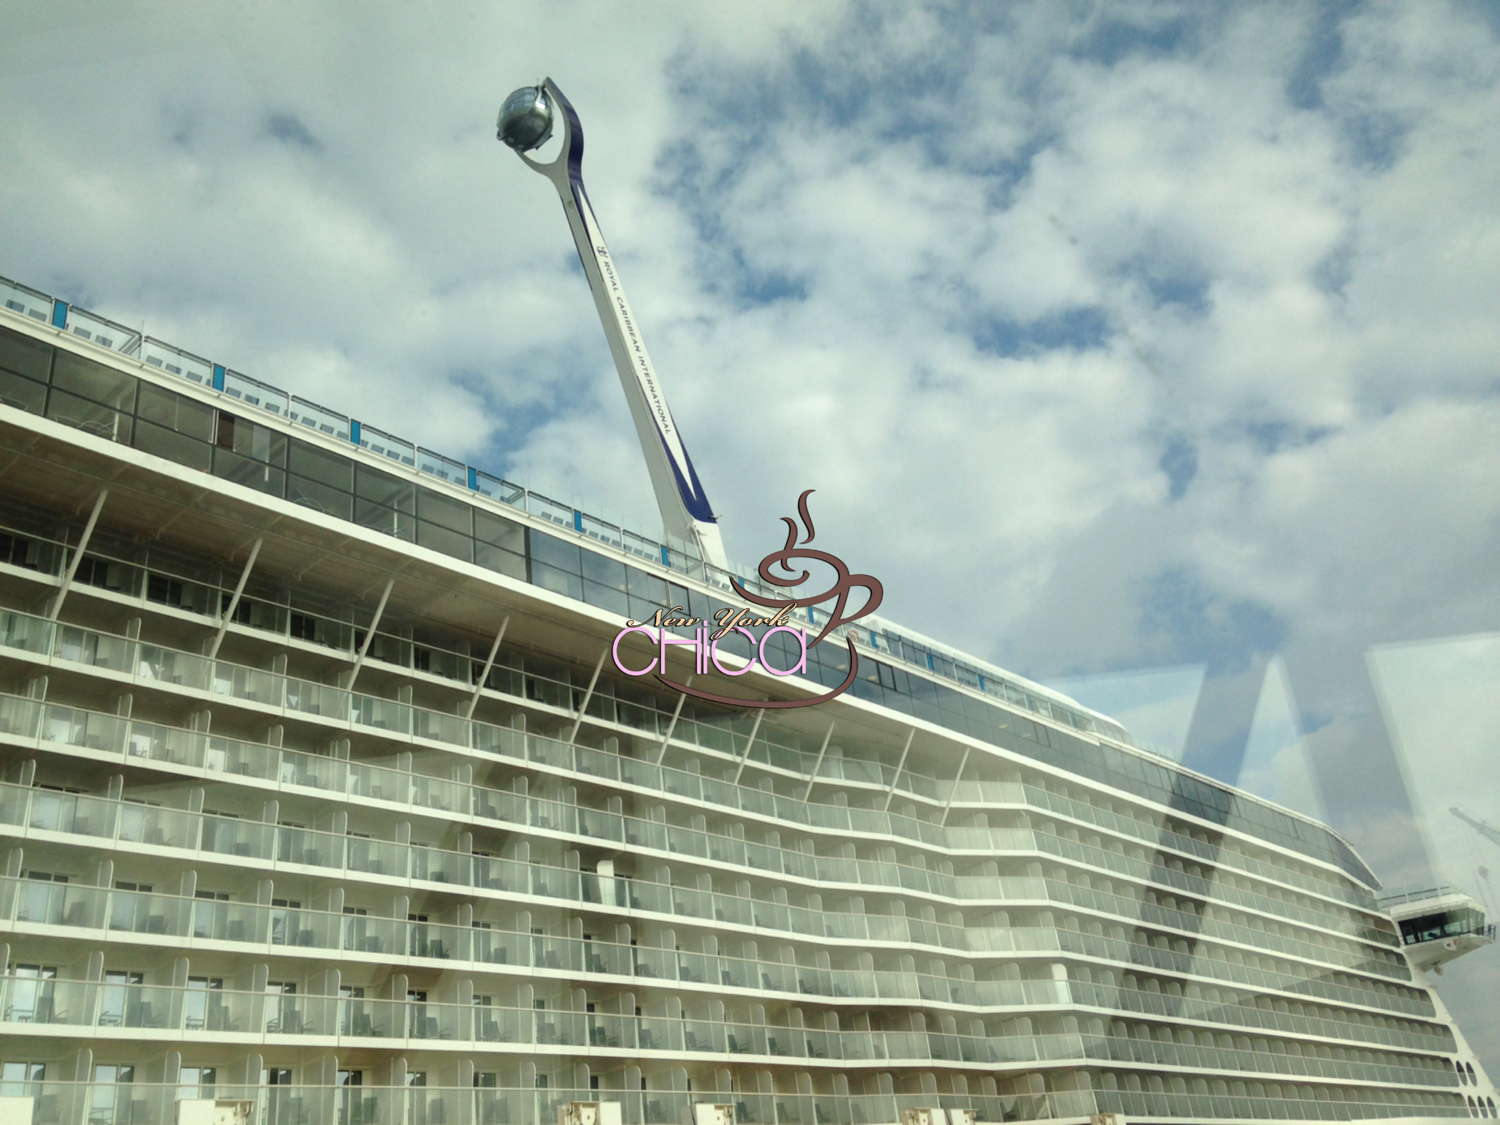 Quantum of the Seas - Side of ship